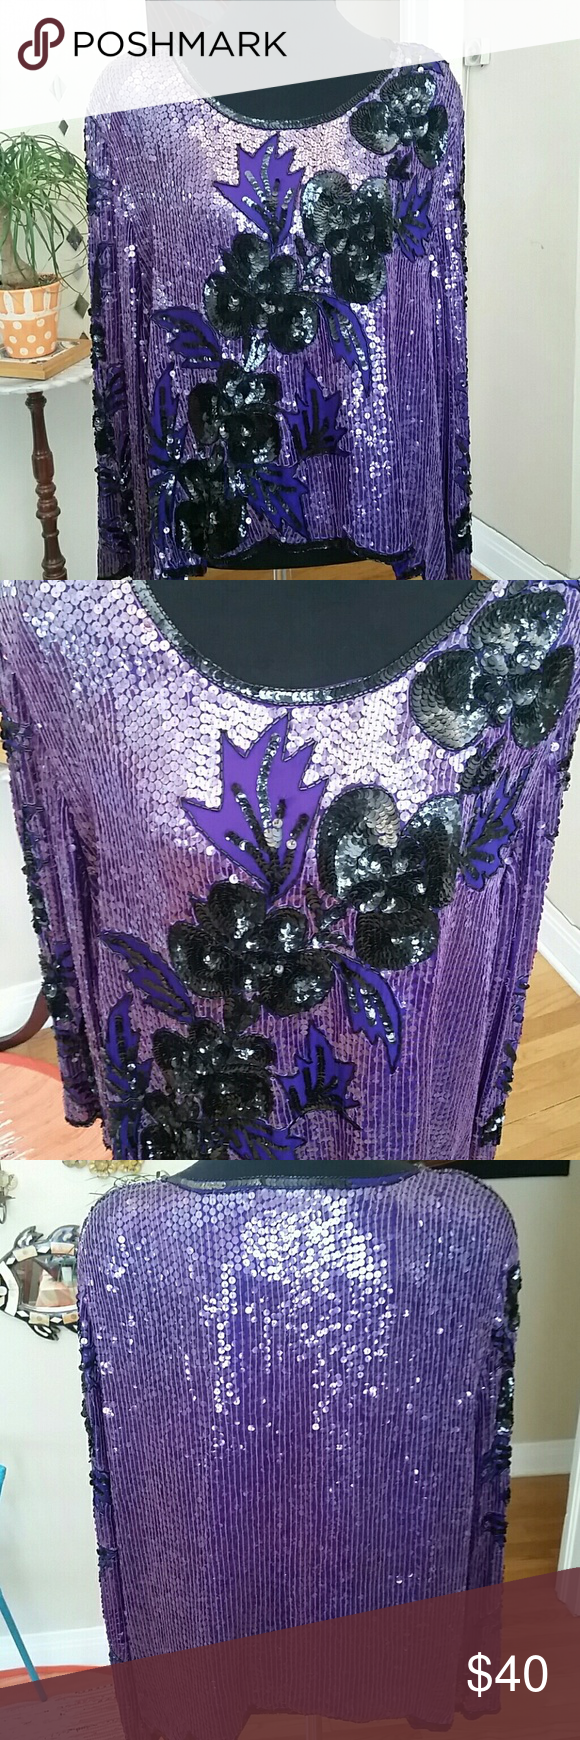 VTG Purple Sequin Top! Gorgeous! Size L This blouse is incredible! Does have shoulder pads but easily can be taken out. Has cute little slits on sides. Gorgeous black and bright royal Purple sequins. 100% pure silk. Looks super cute hanging off shoulder. Fits like a L/XL but looks cute on a smaller woman. Wider feeling. Love this vintage classic top!♡ Vintage Tops